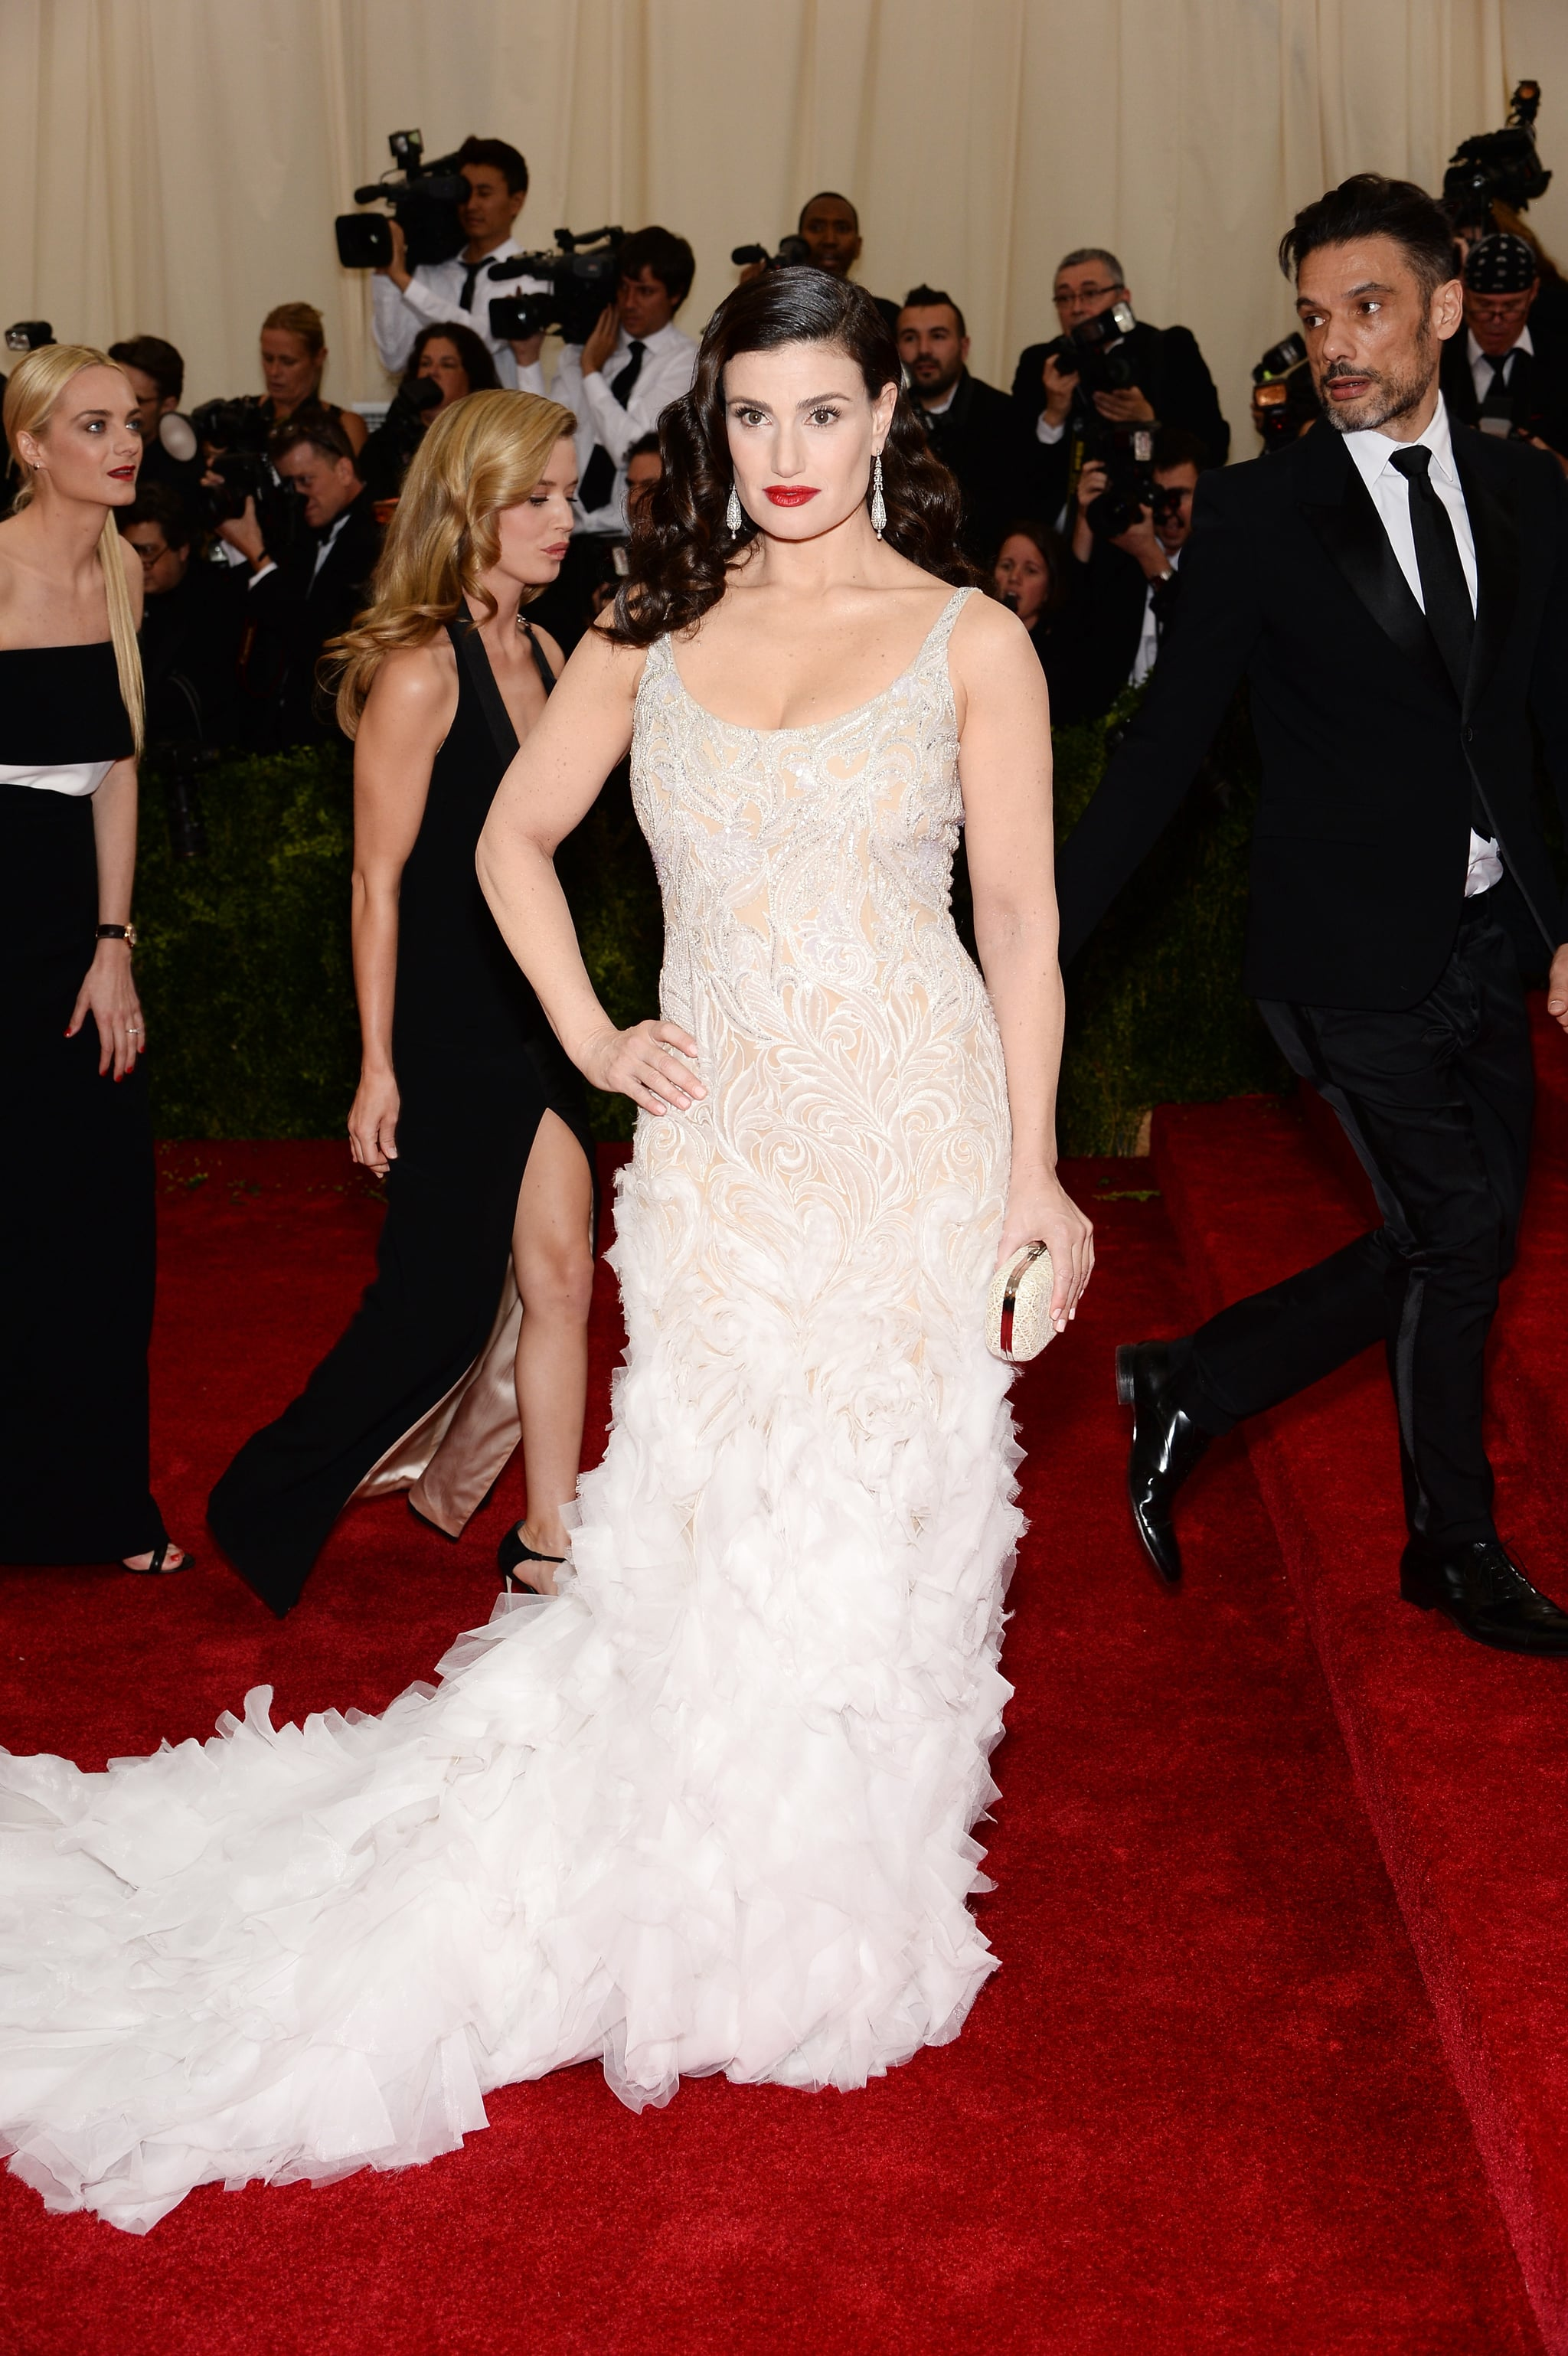 Idina Menzel at the 2014 Met Gala